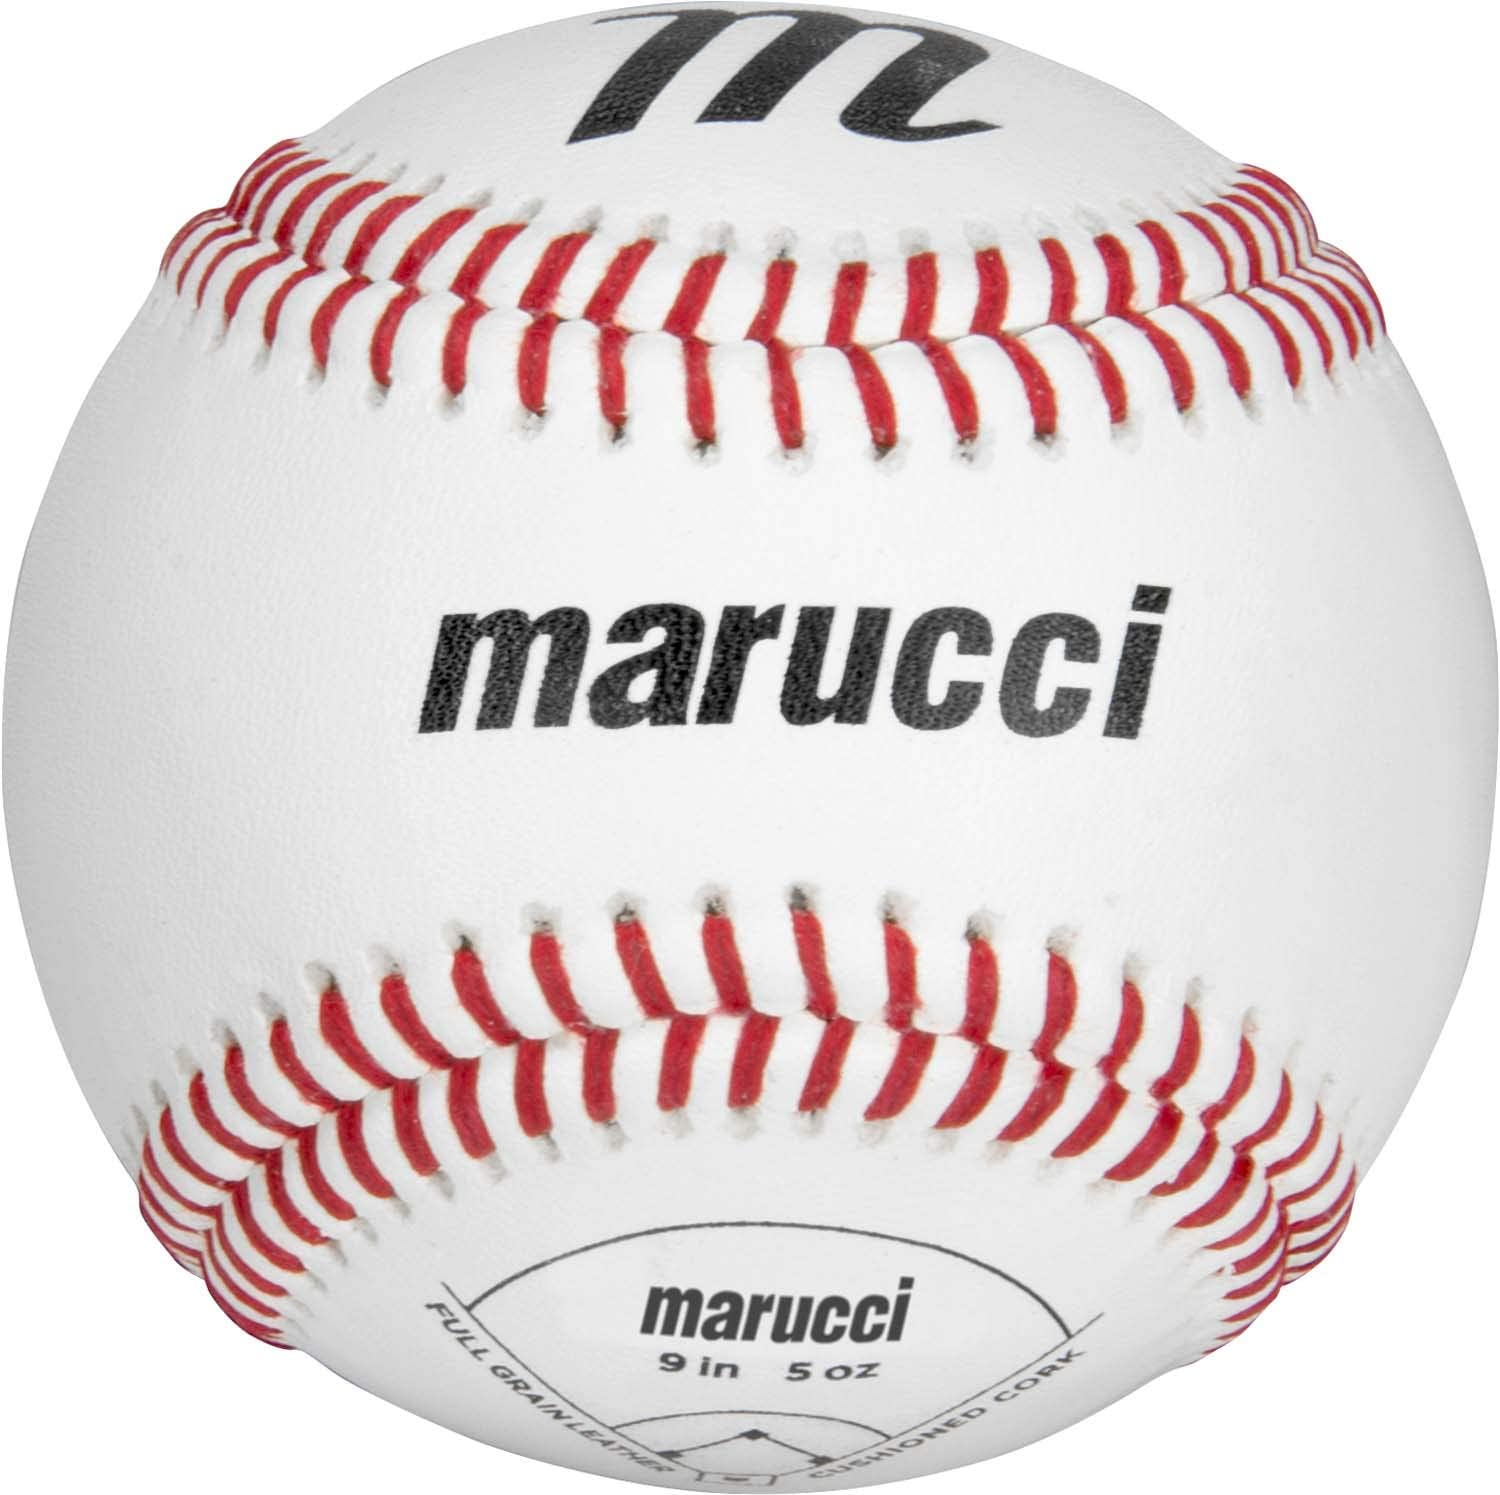 Marucci sports, MOBBLPY9-12, one dozen Youth practice baseballs, as a company founded, majority-owned, and operated by current and former big Leaguers, Marucci is dedicated to quality and committed to providing players at every level with the tools they want and need to be successful. Based in baton Rouge, Louisiana, Marucci was founded by two former big Leaguers and their athletic trainer who began handcrafting bats for some of the best players in the game from their garage. Fast forward 10 years, and that dedication to quality and understanding of players needs has turned into an All-American success story. Today, Marucci is the new number one bat in the big leagues.